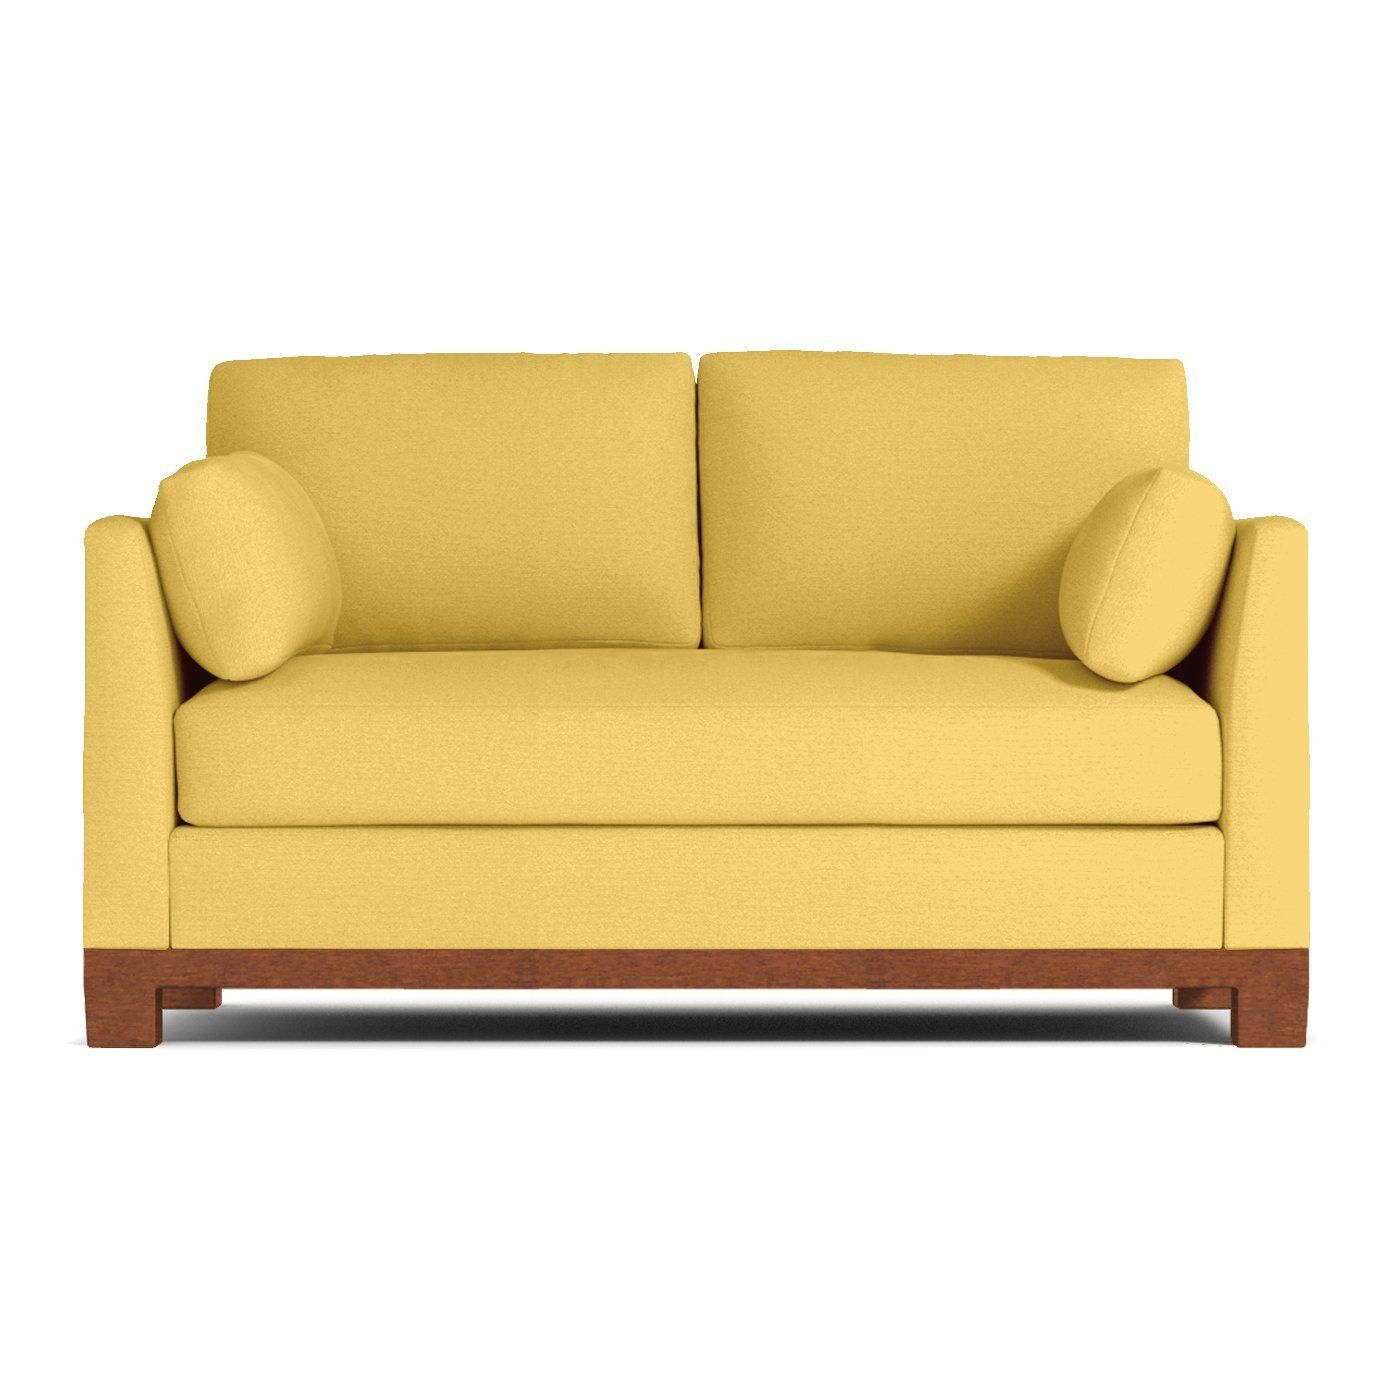 Pin On Family Room Sofas